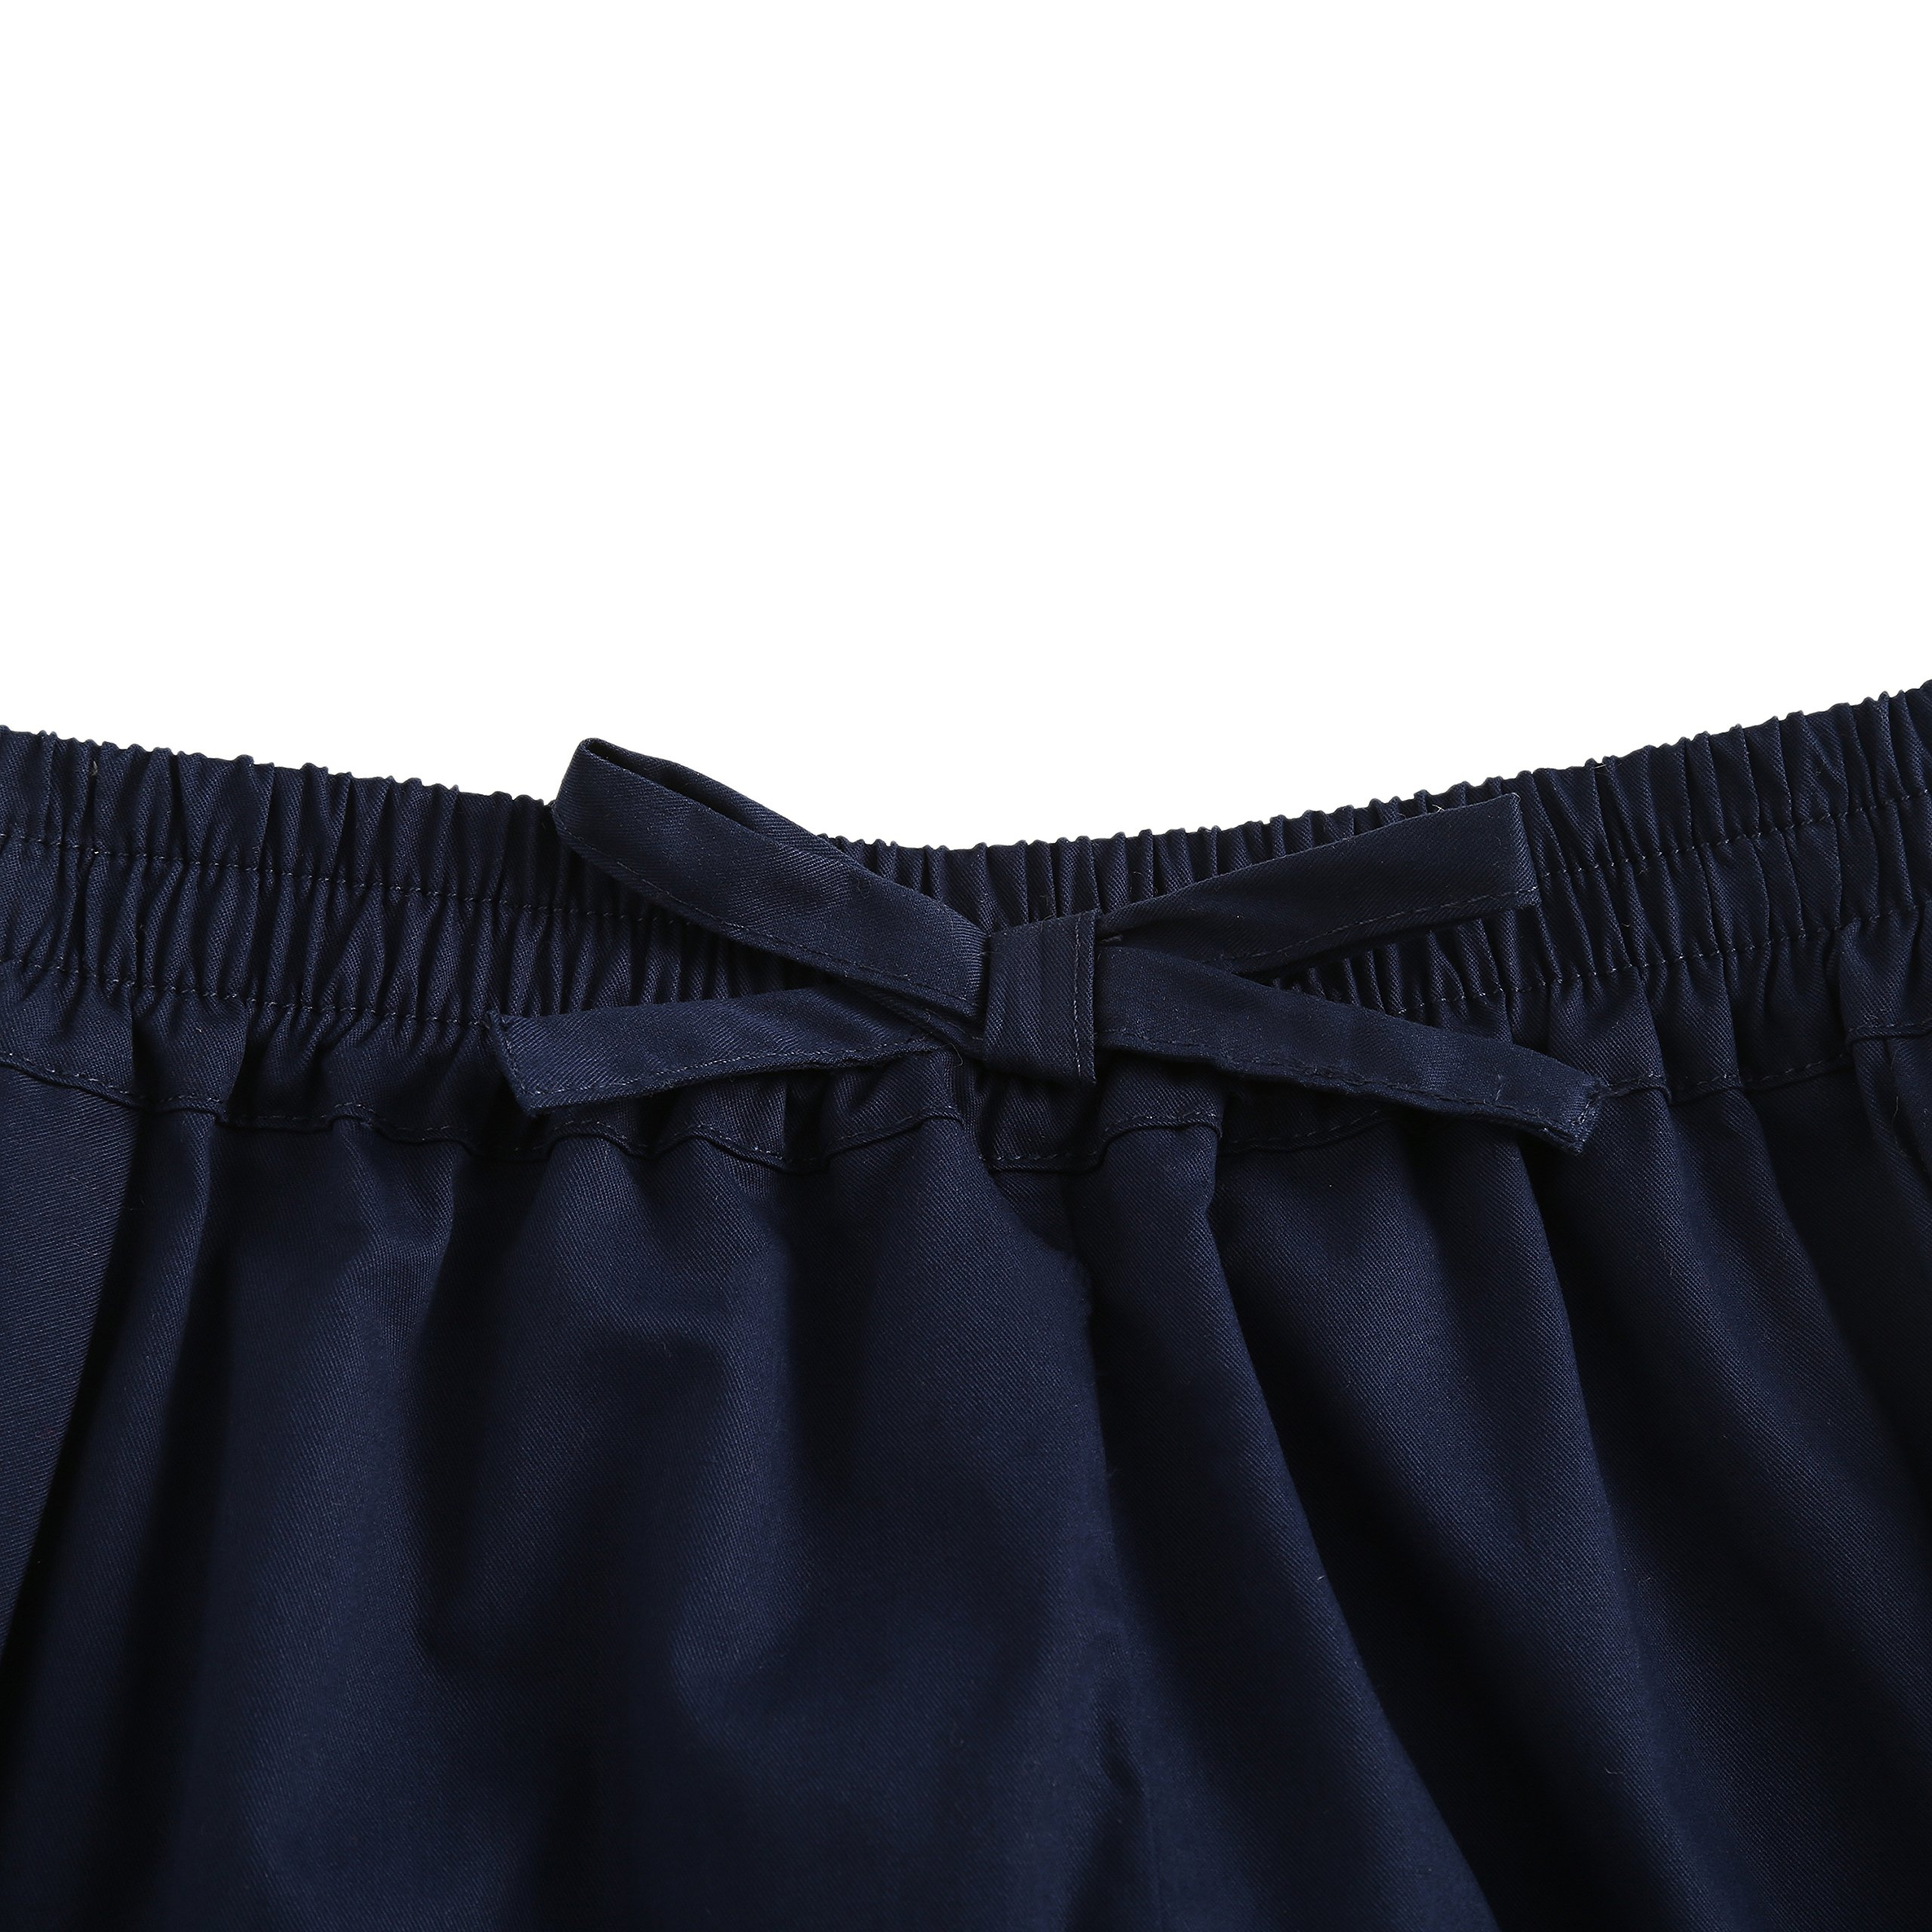 Richie House Big Girls' Summer Short Pants with Bow RH2288-A-12 by Richie House (Image #5)